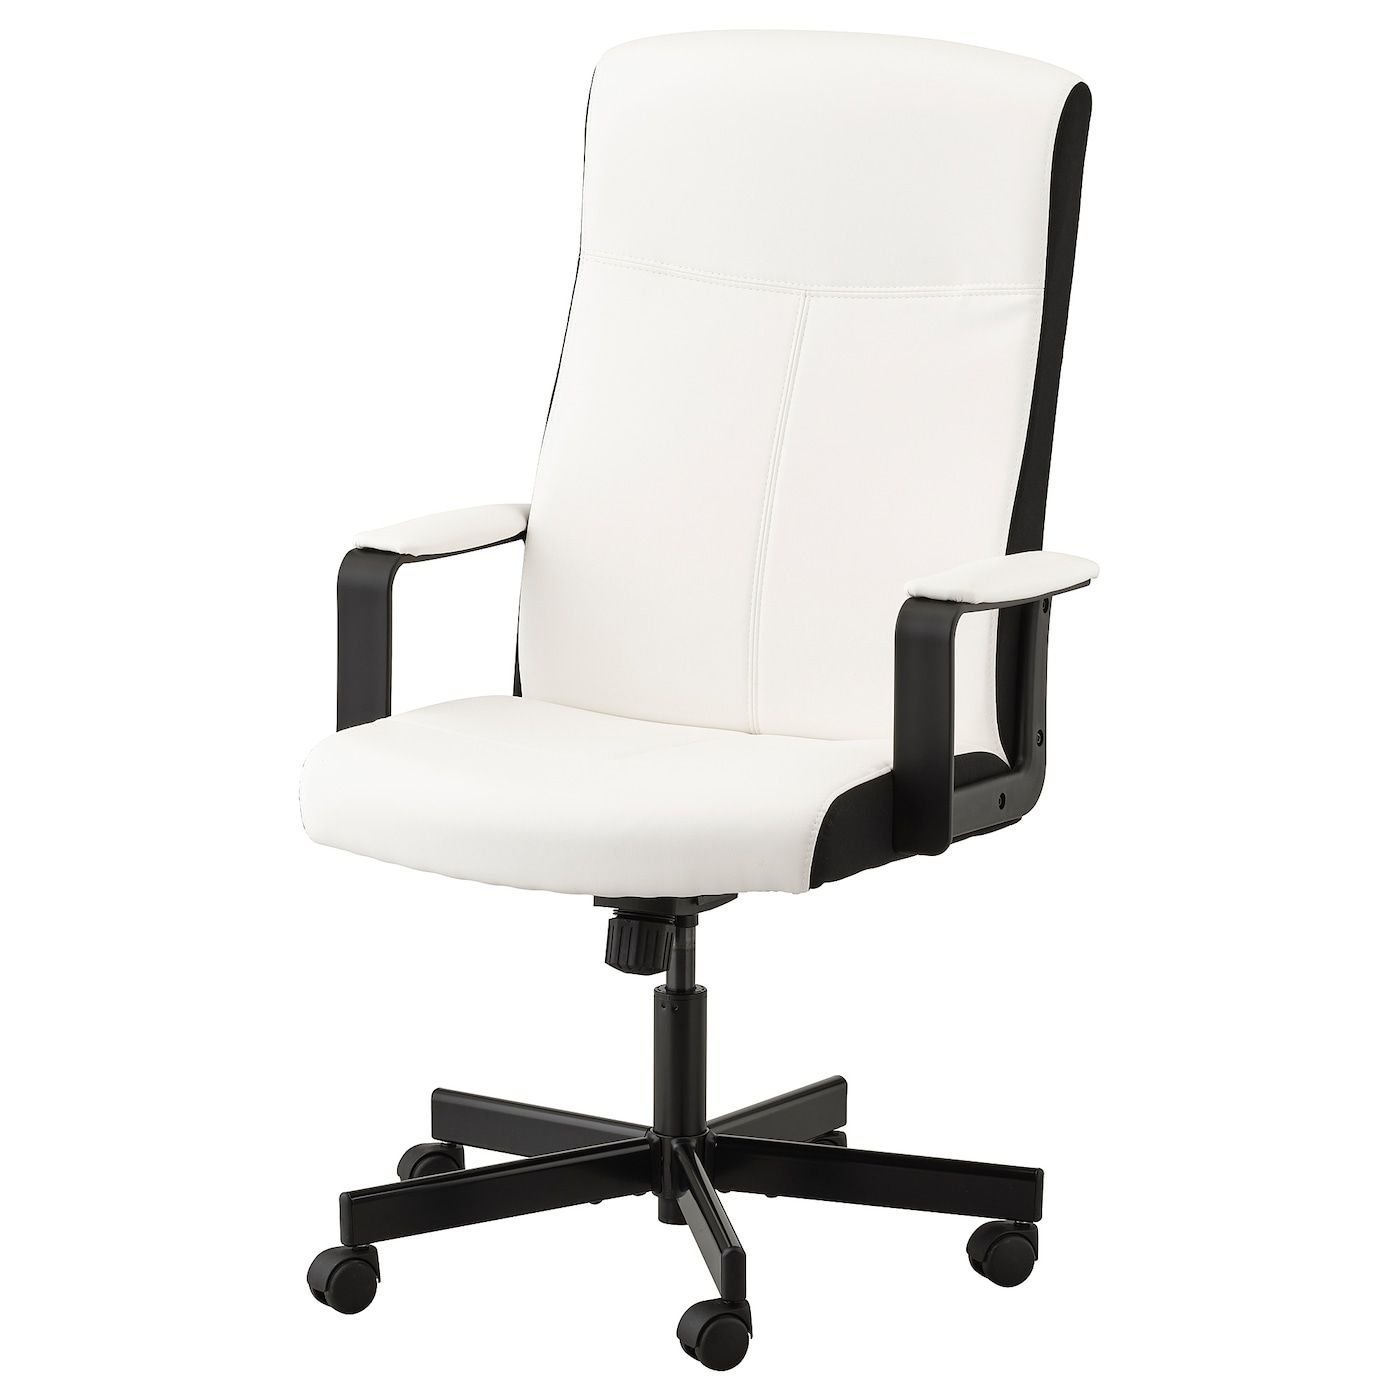 Furnitures Ikea Office Chairs Swivel Chair Base Wheel Caster Control Mechanism Cylinder Black Fab Office Chair Design Comfortable Office Chair Ikea Desk Chair